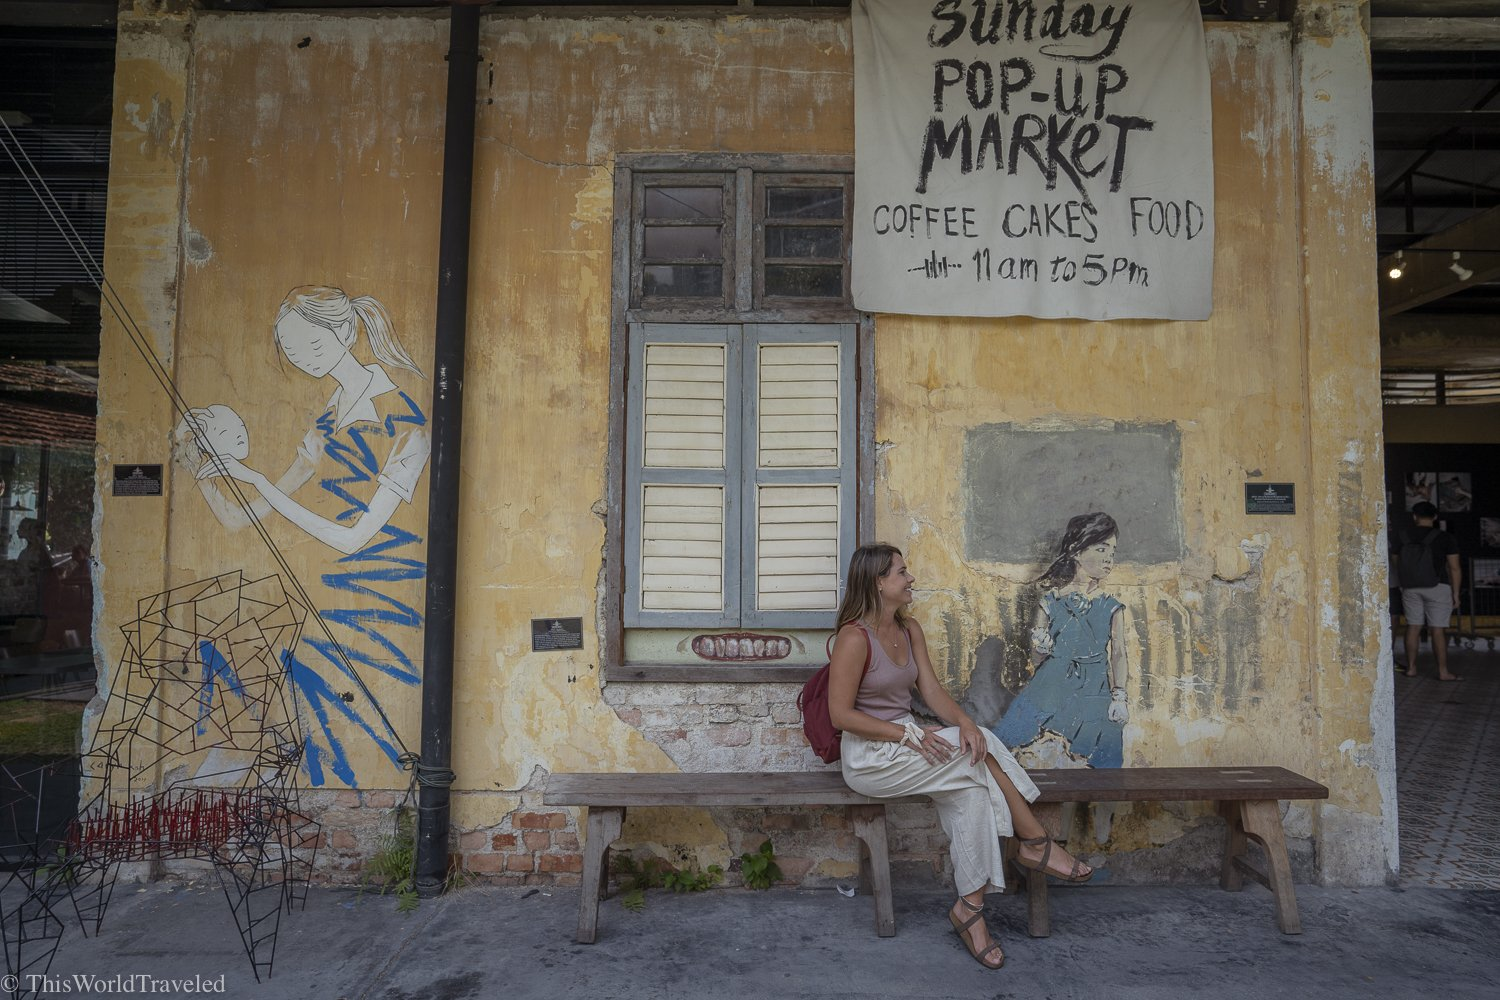 Girl sitting in front of the Hip pop-up market sign in Penang